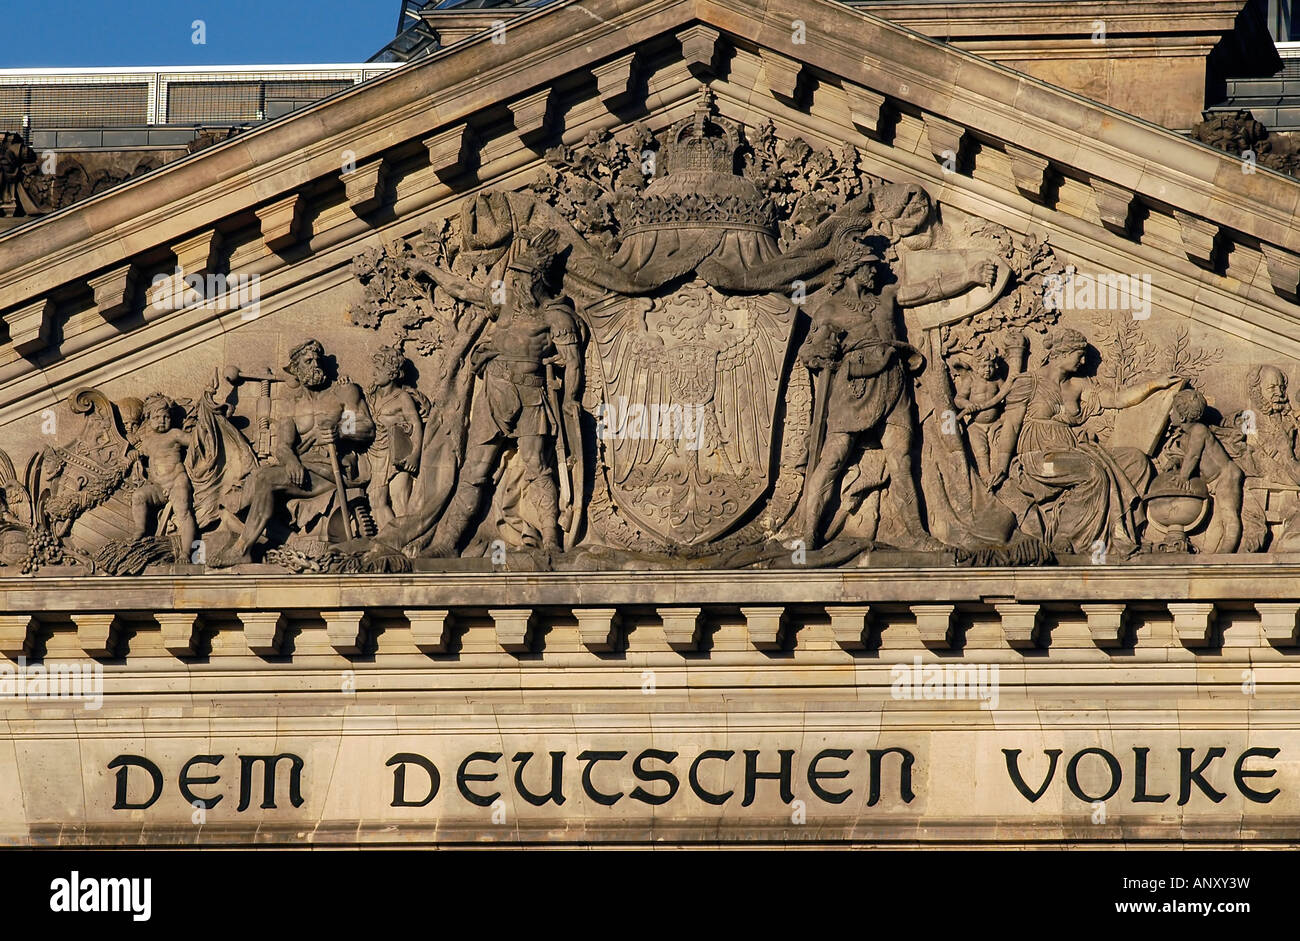 Close-up details of the facade of the Reichstag building in Berlin, reading 'The German People'. - Stock Image